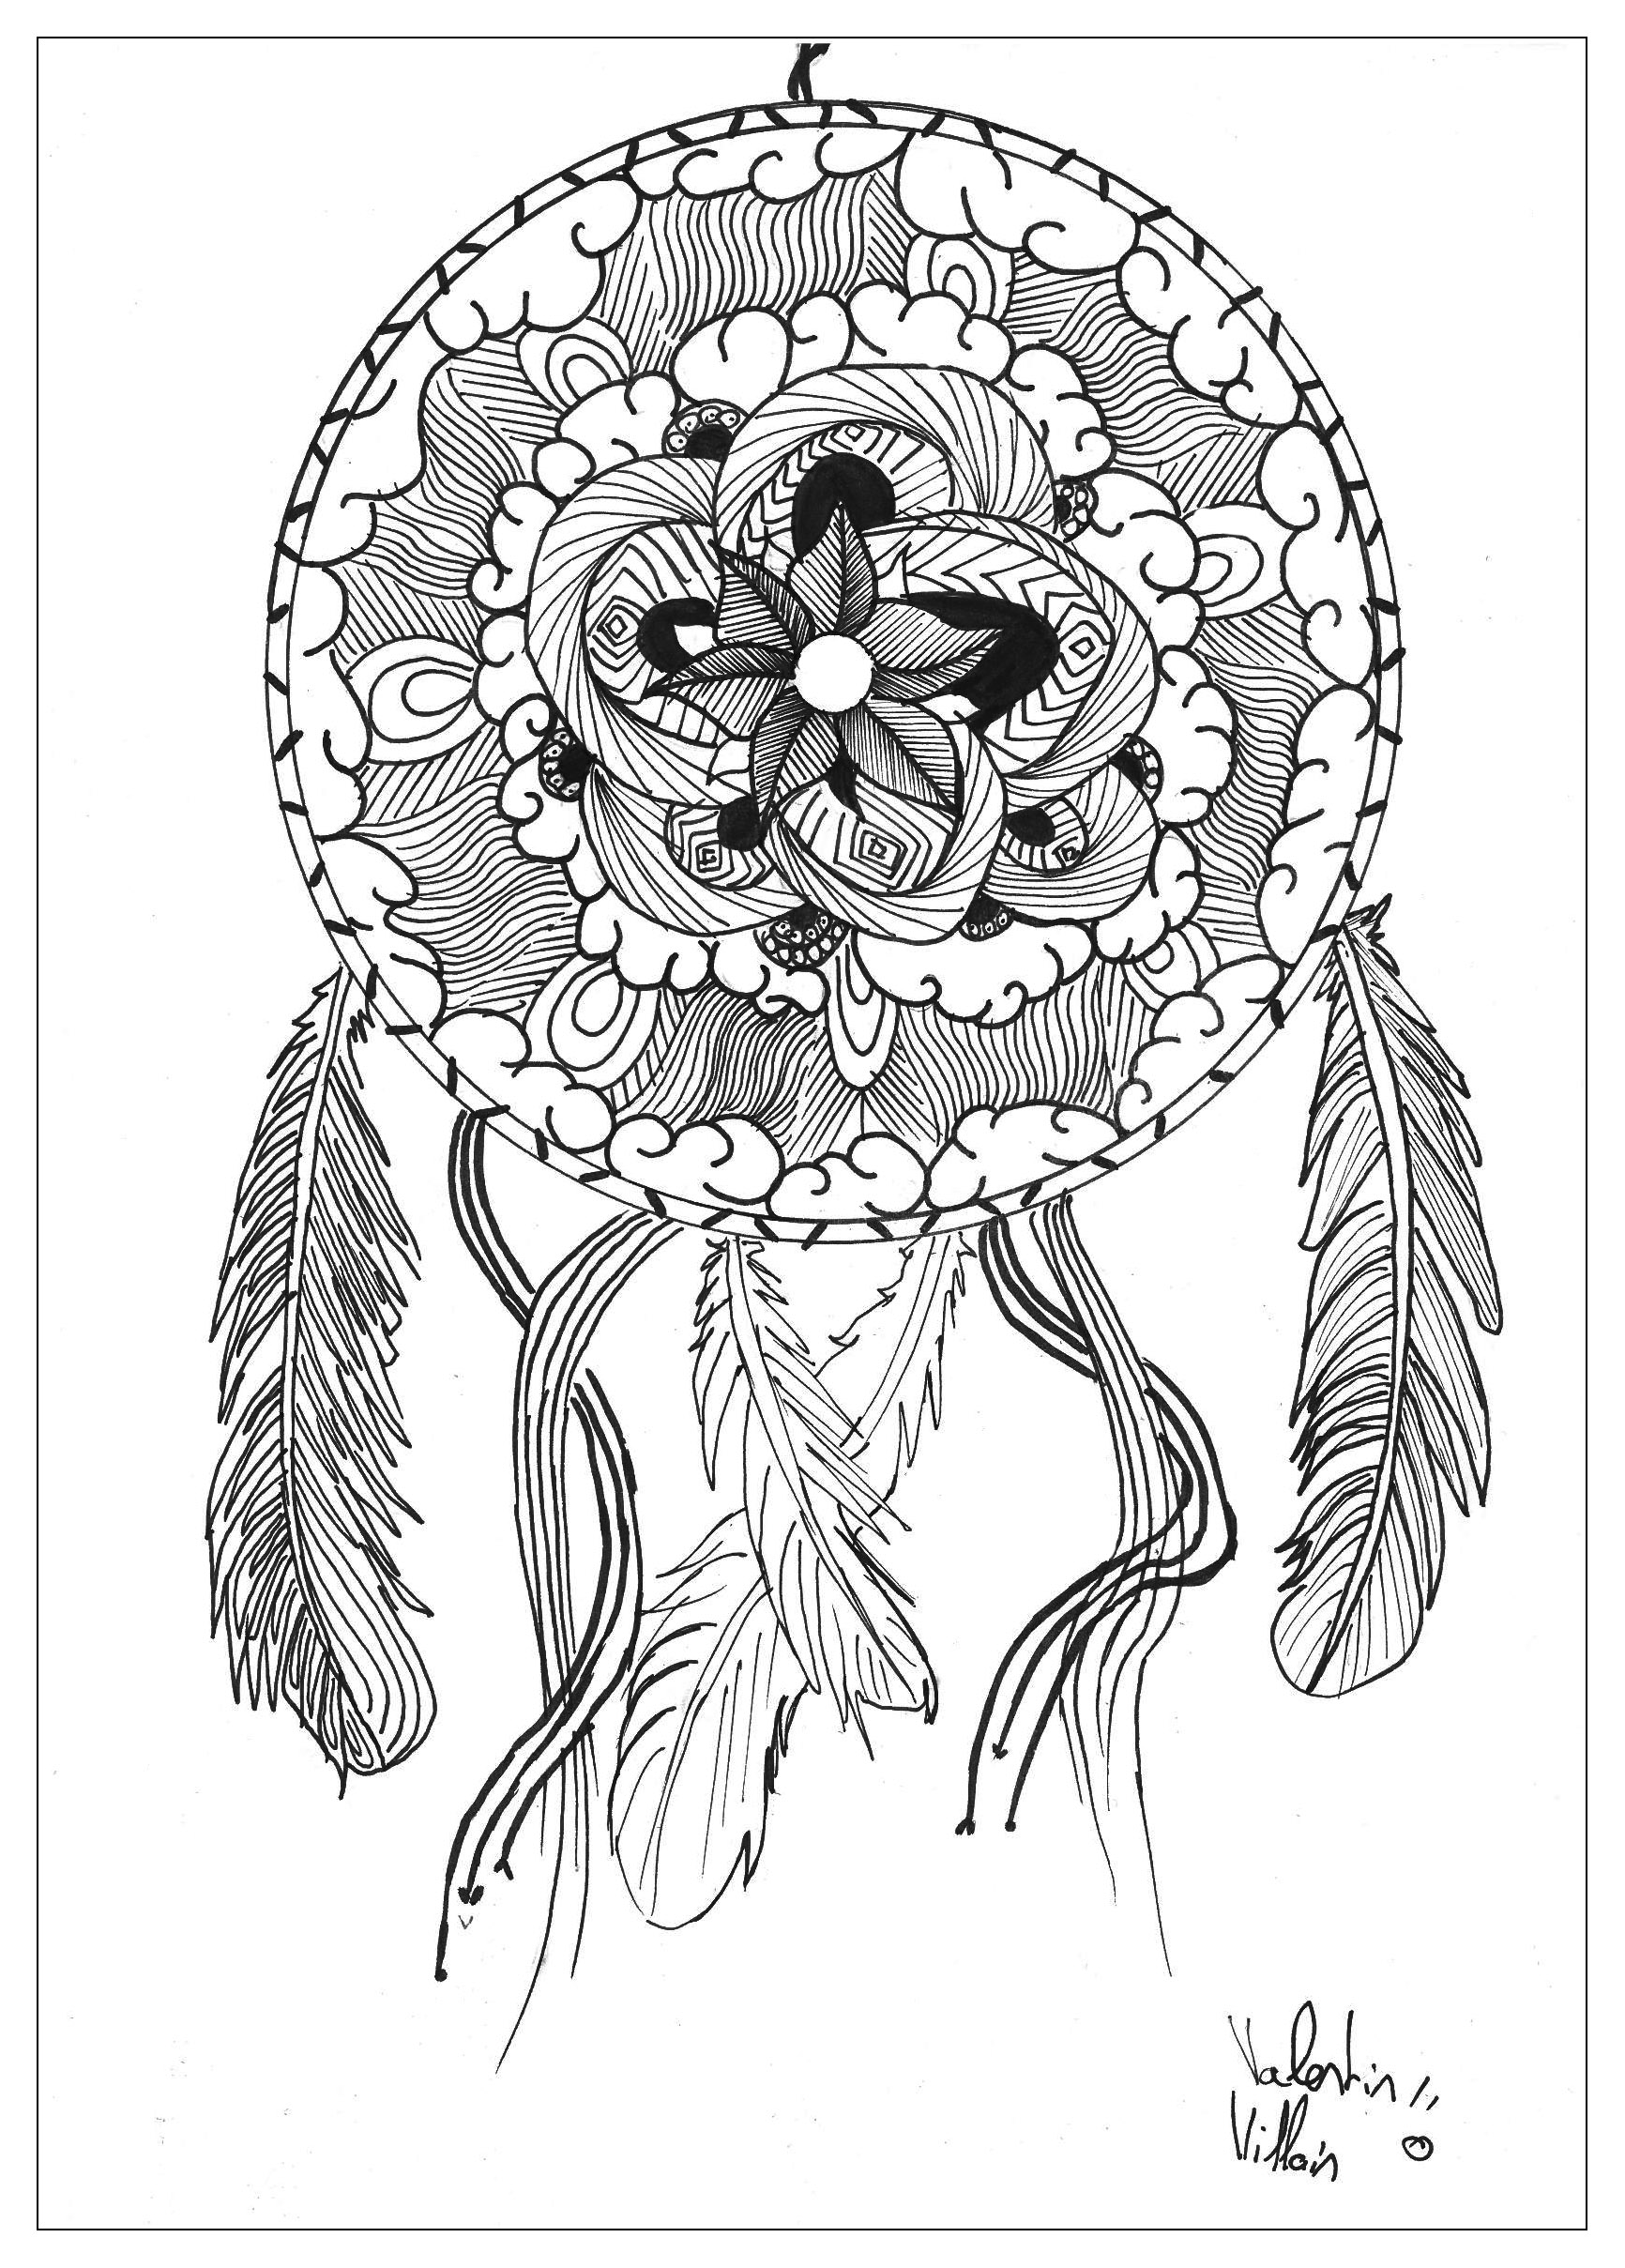 Draw mandala dream catcher by valentin | Mandalas - Coloring pages ...